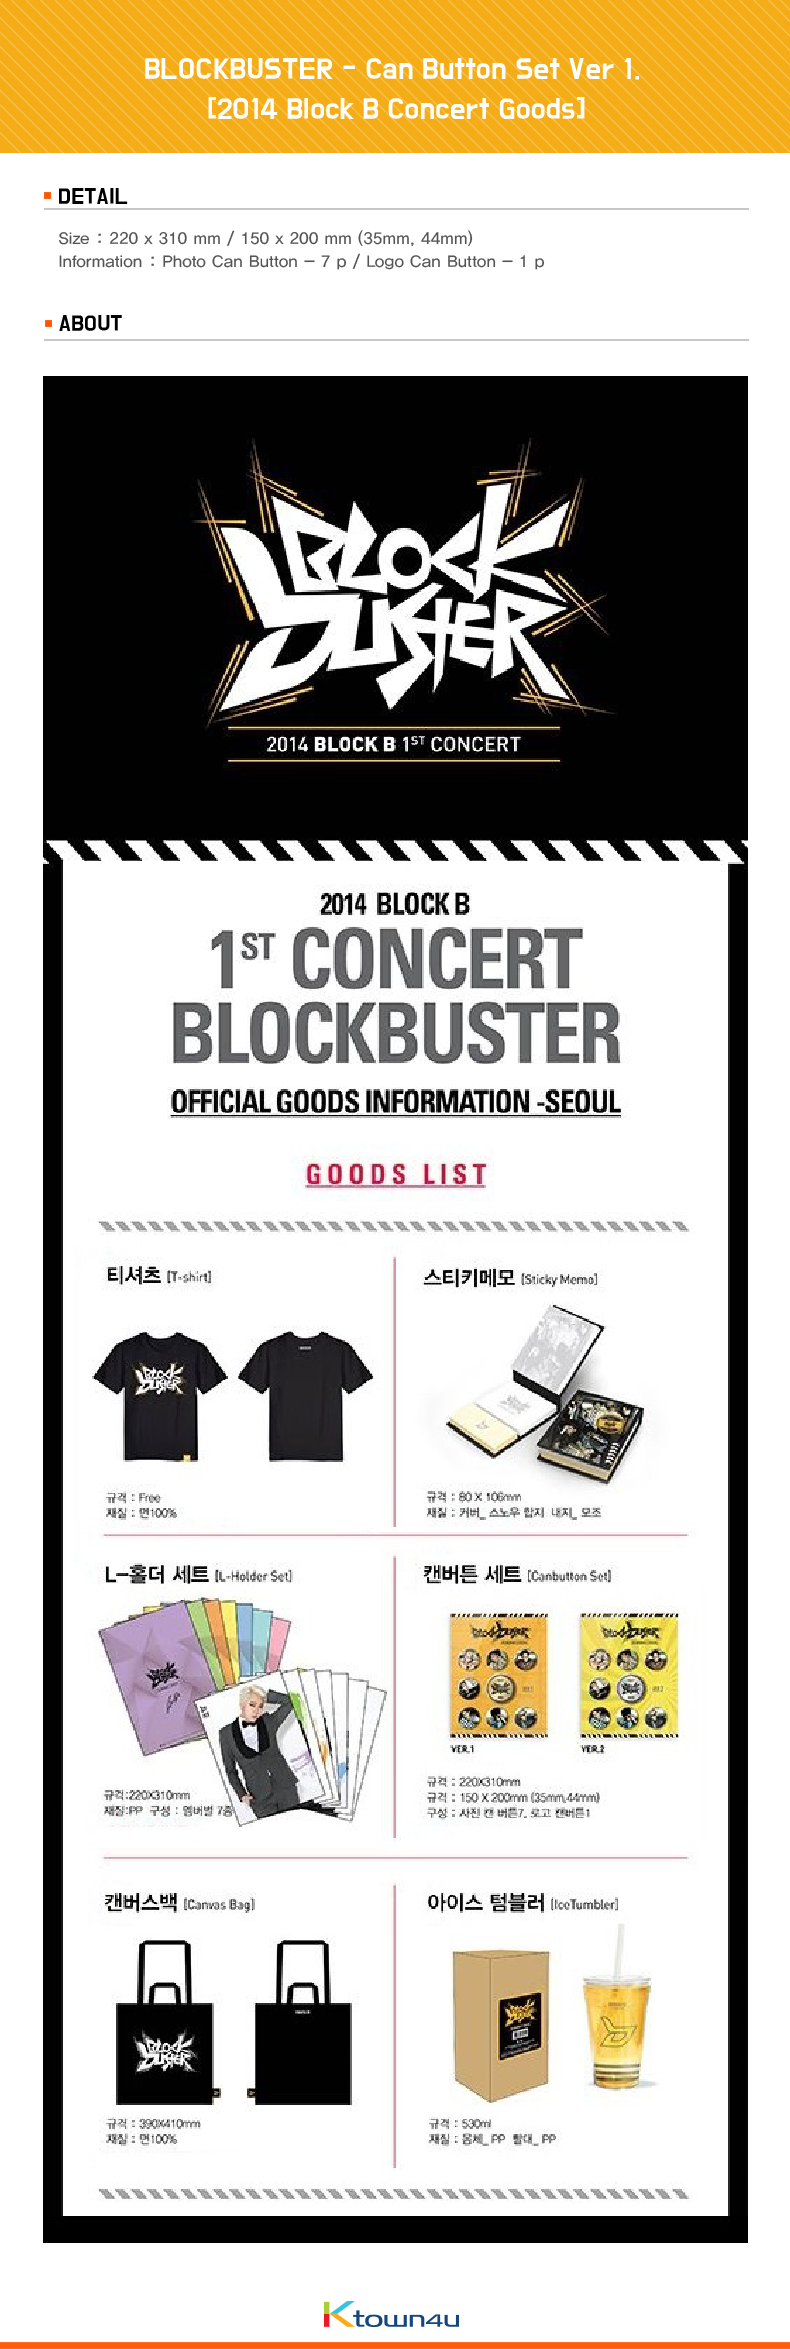 BLOCKBUSTER - Can Button Set Ver 1. [Block B Concert Goods]